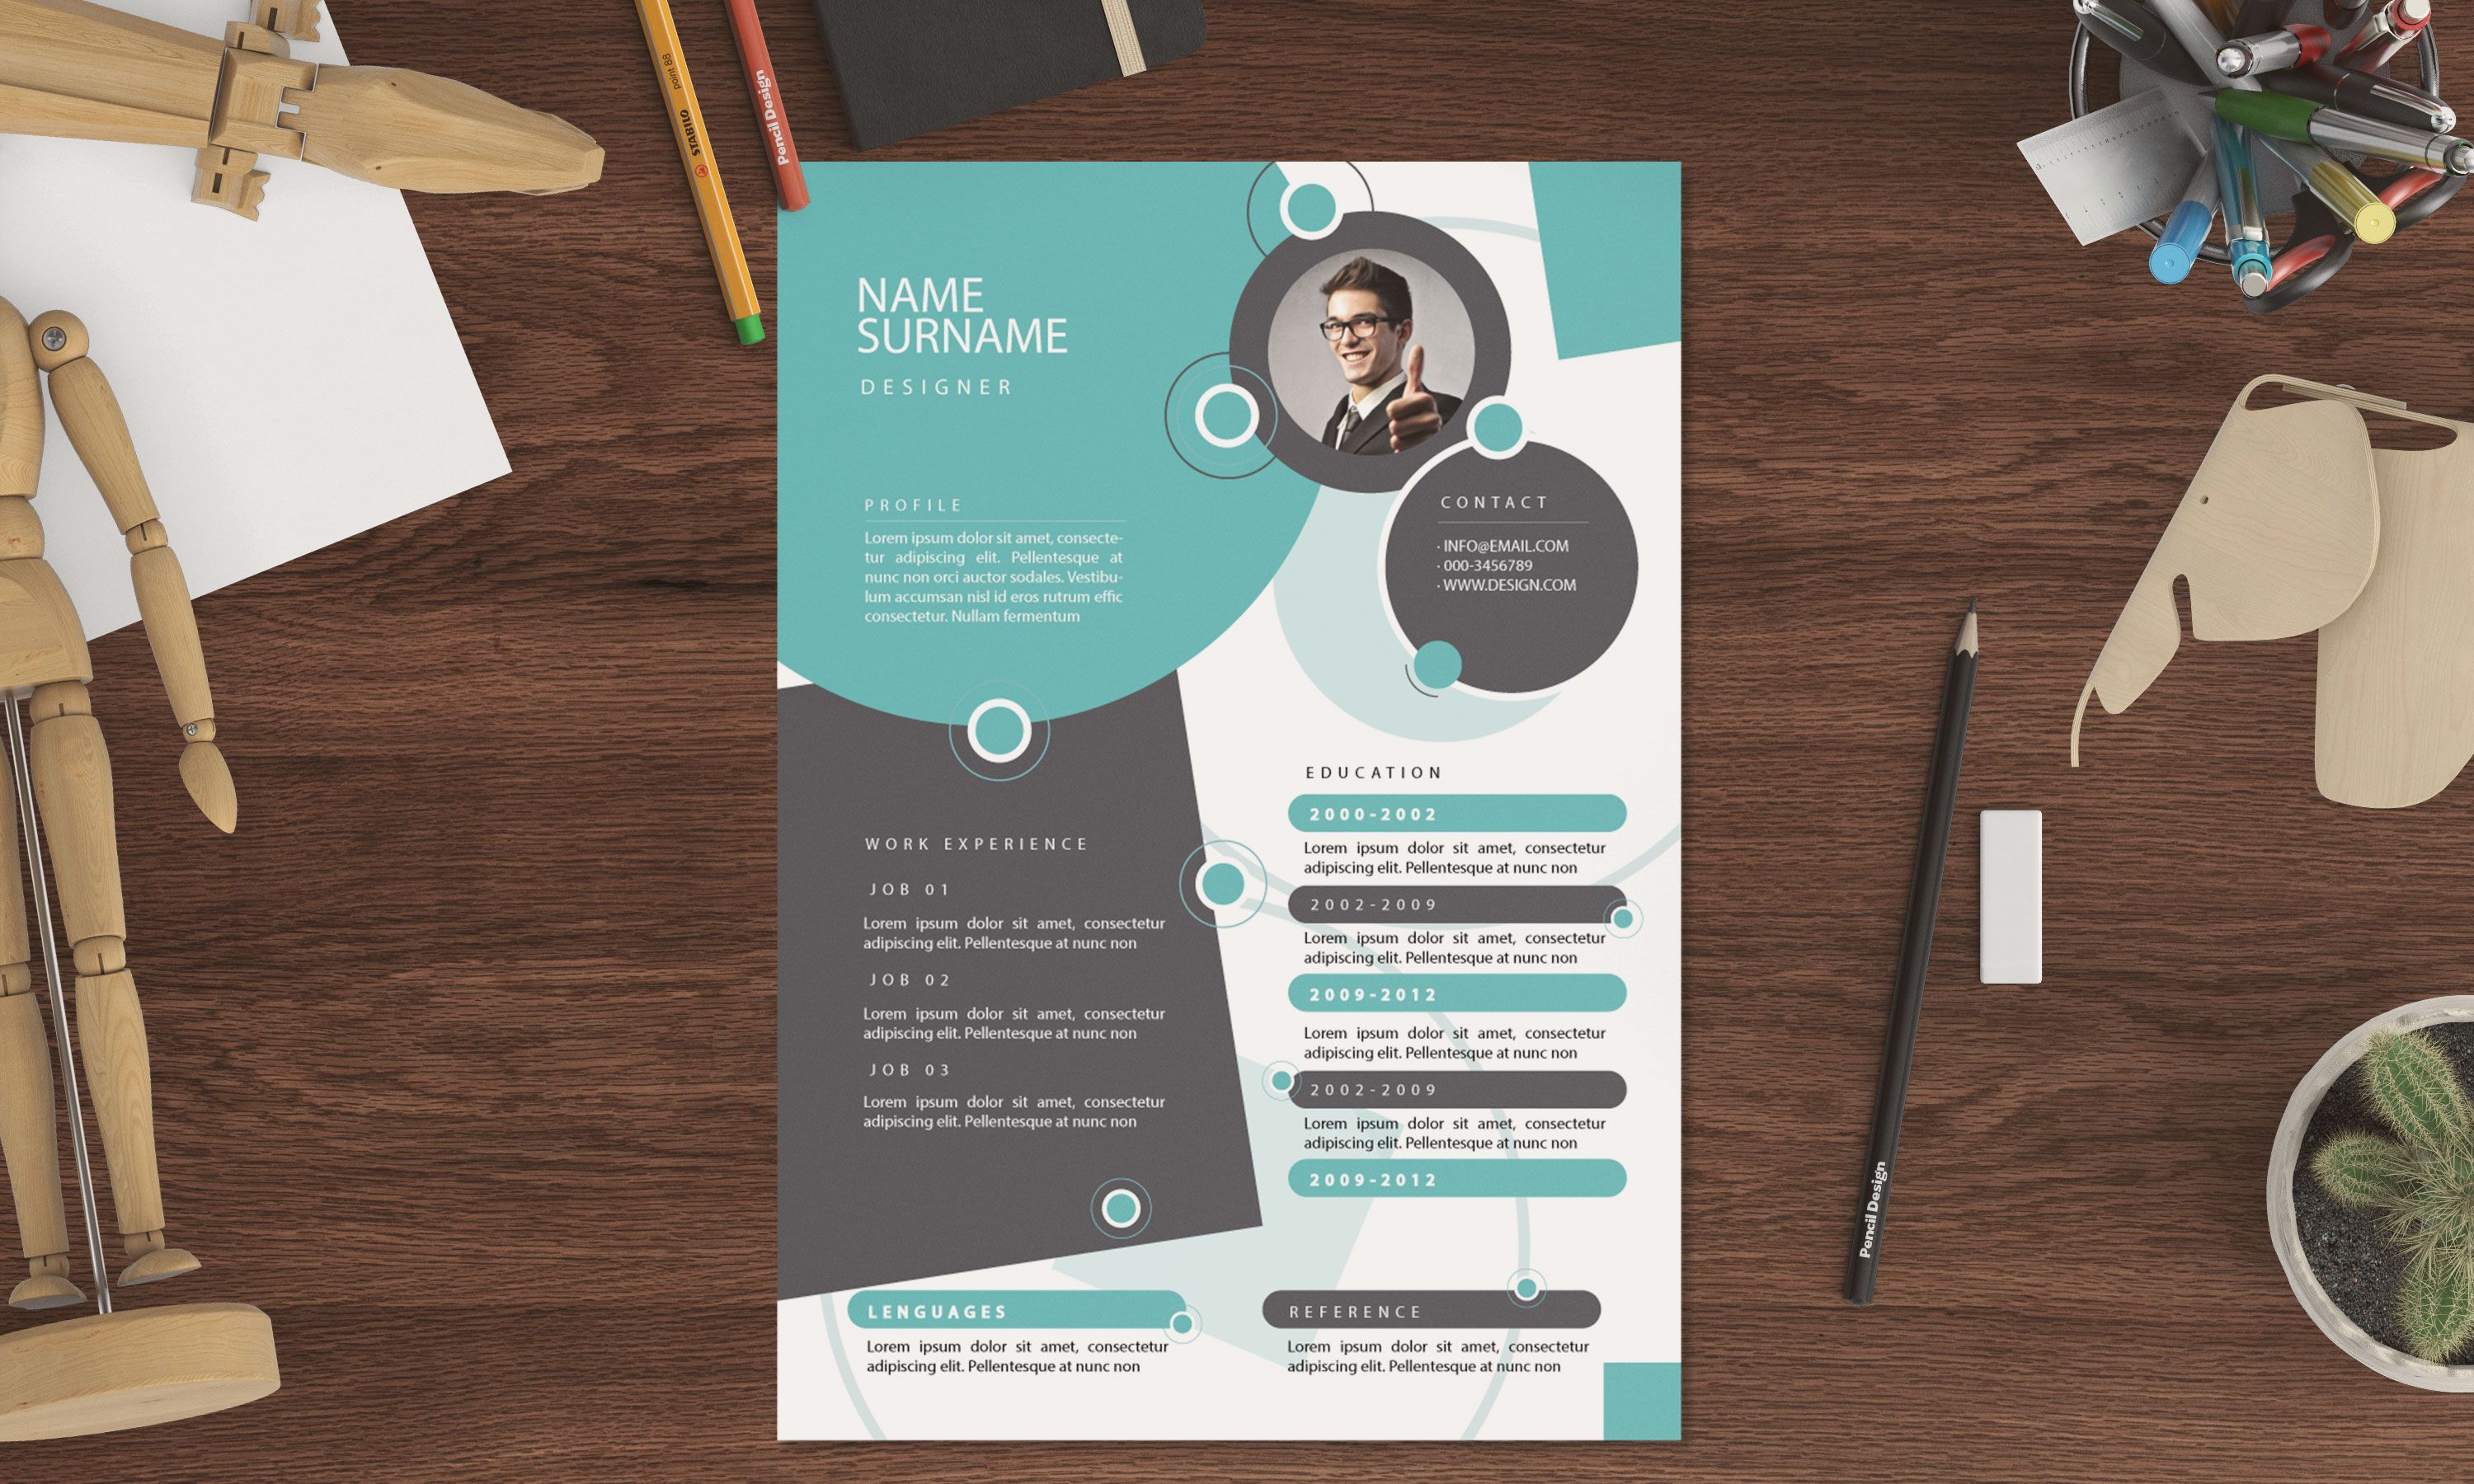 resume templates to enhance your resume available in five resume templates to enhance your resume available in five different styles resumetemplates